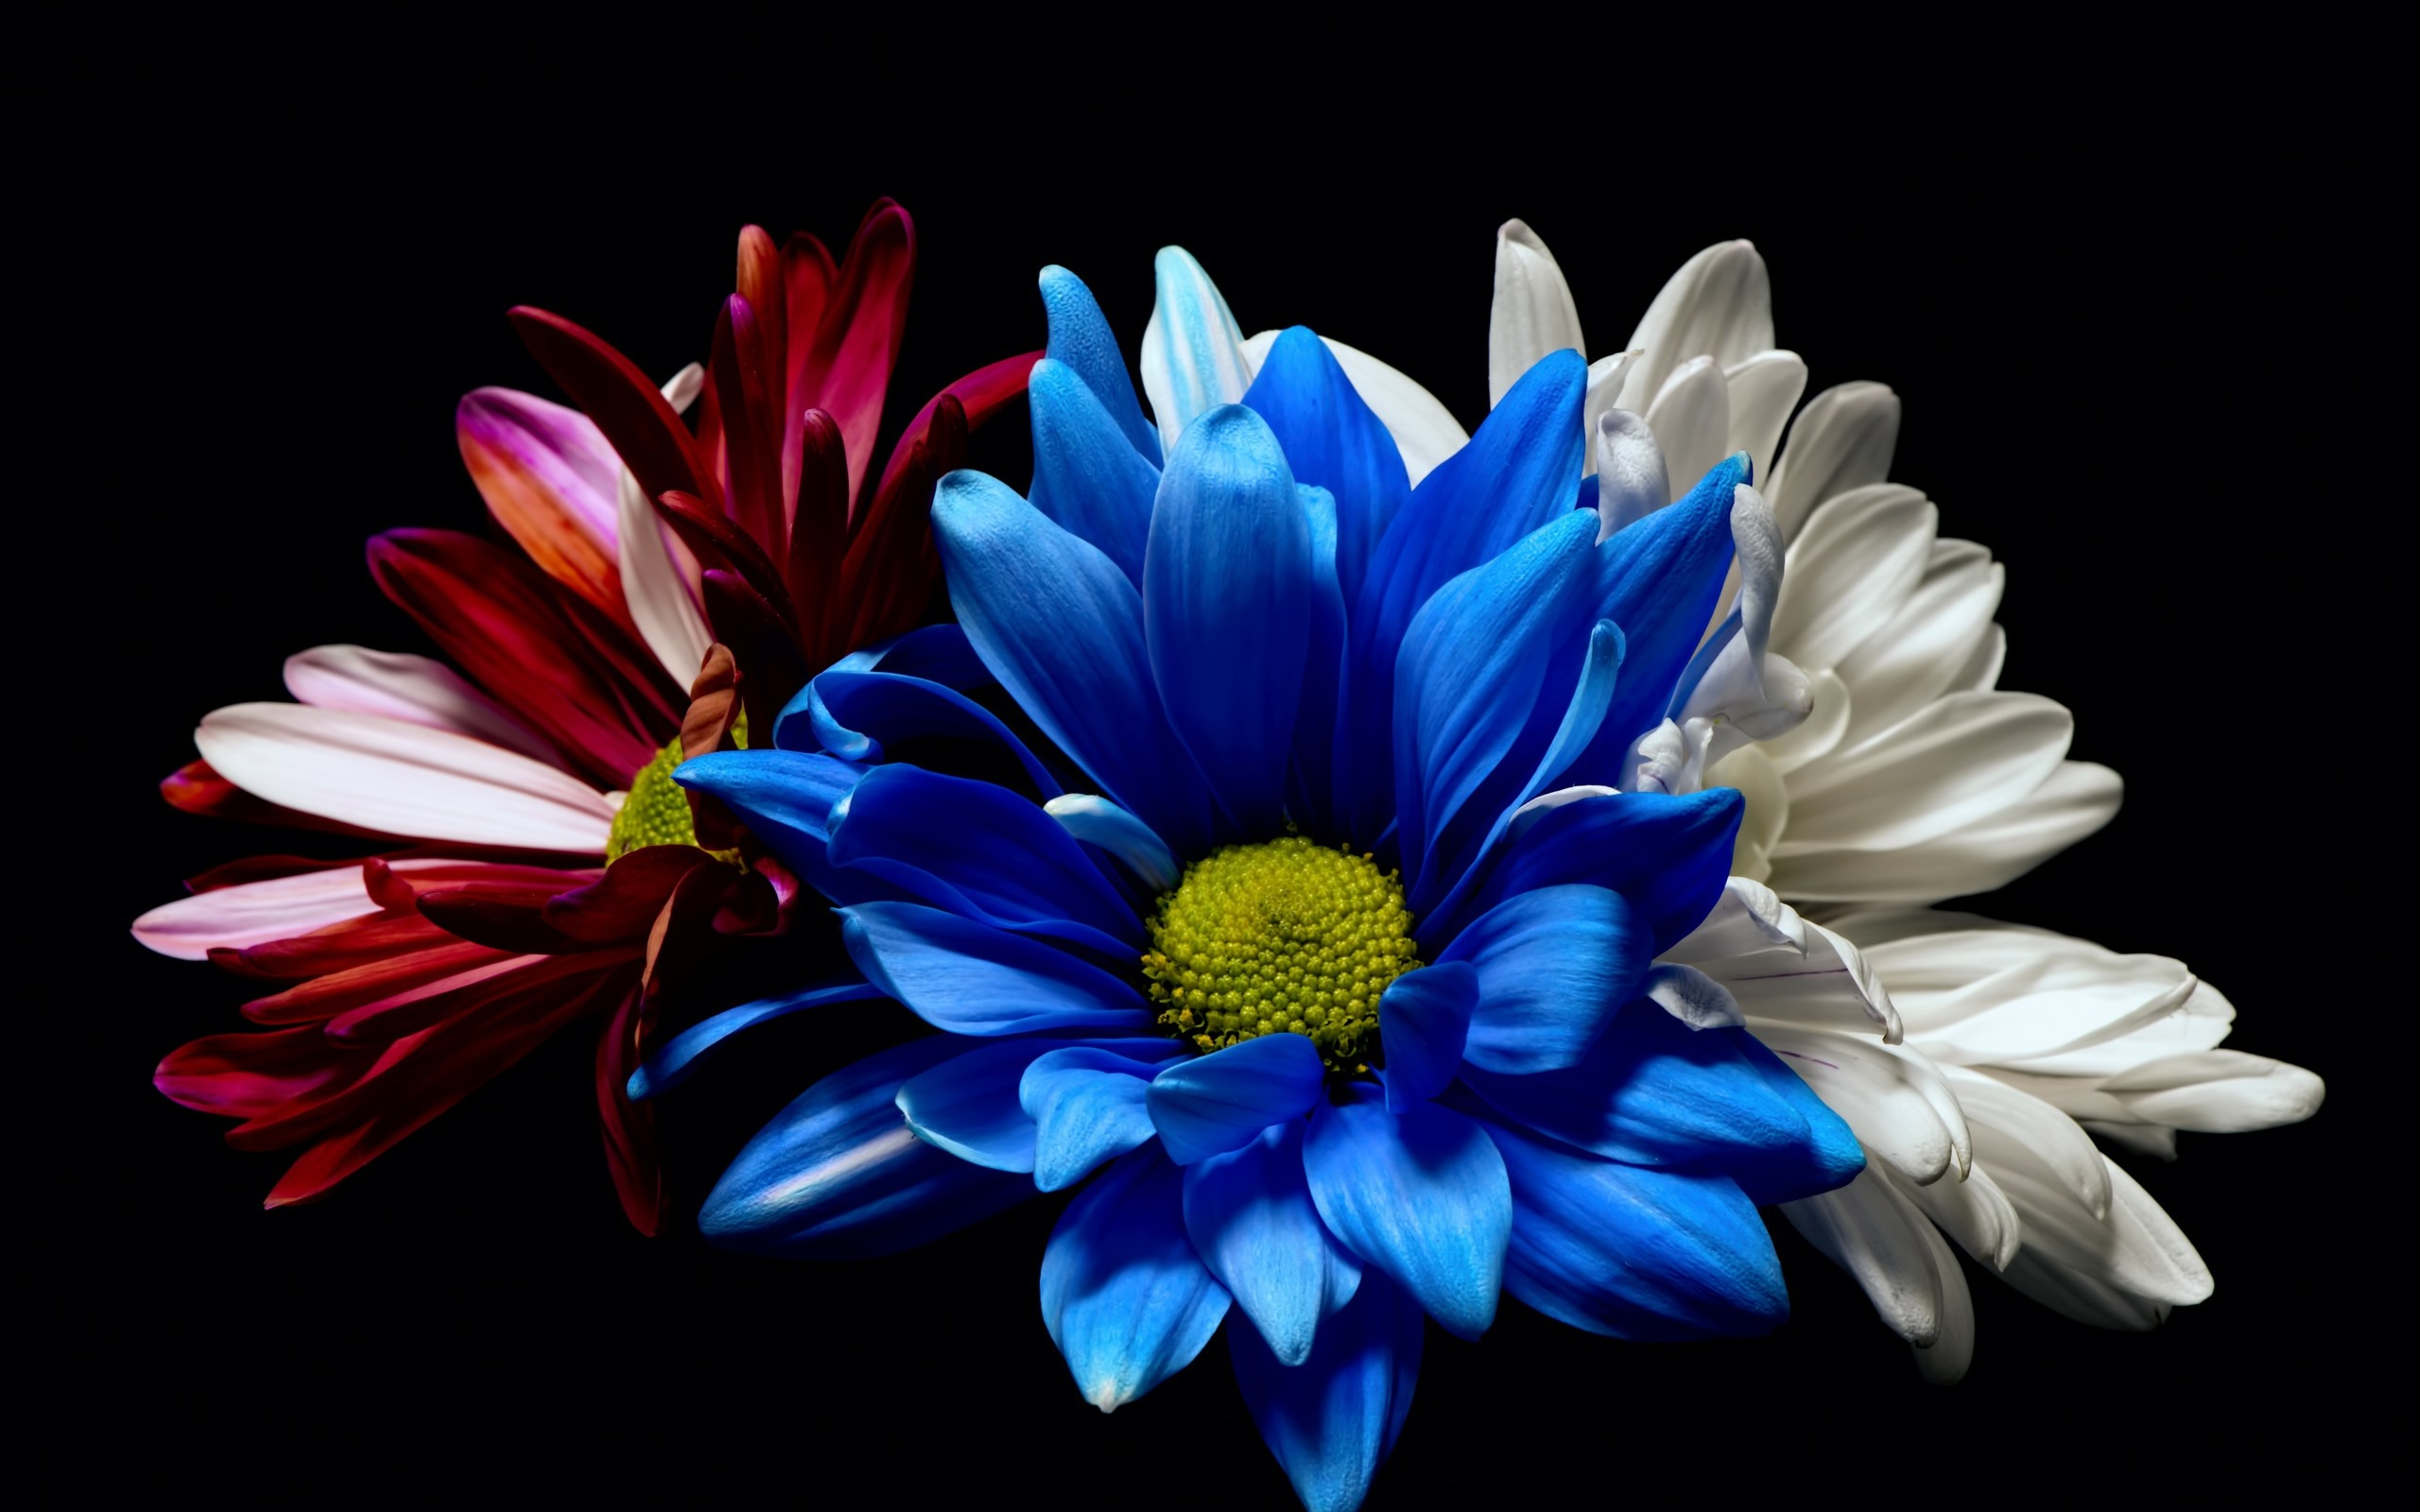 Wallpaper Blue White And Red Gerbera Flowers Black